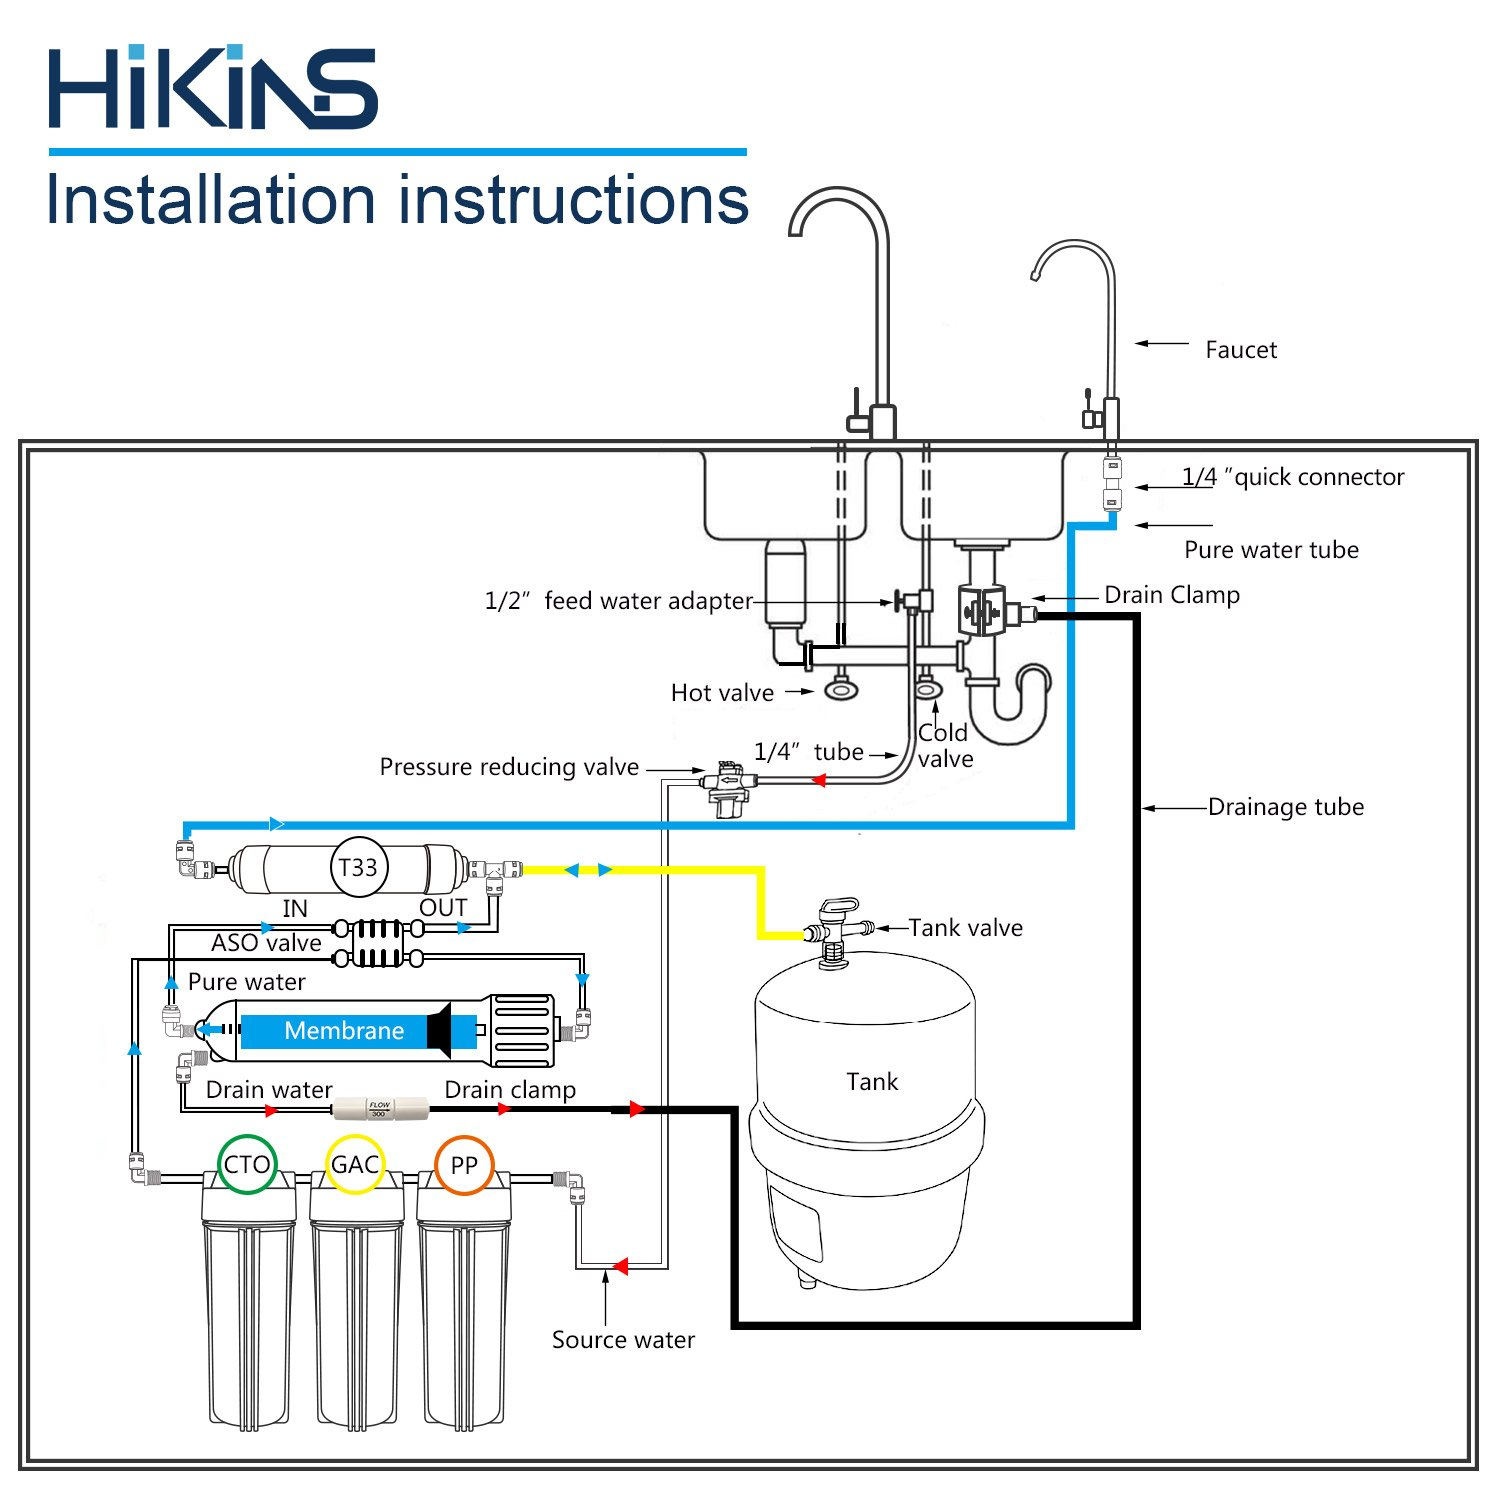 Hikins 7 Stage Faucet Water Filter With Ceramics Filtration Diagram System Long Lasting Tap Purifier